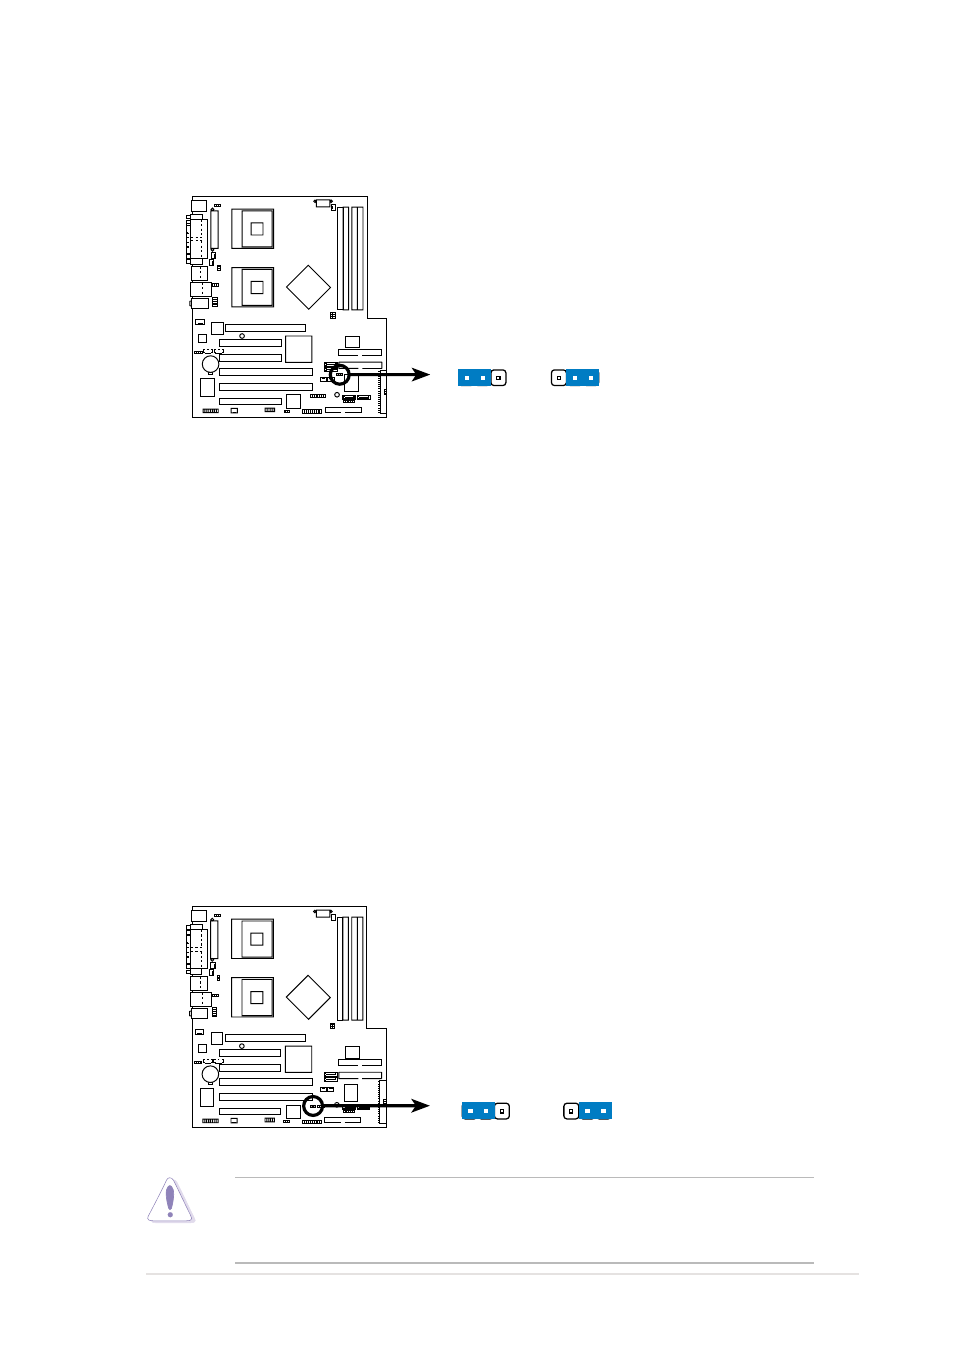 Asus PCH-DL User Manual | Page 39 / 100